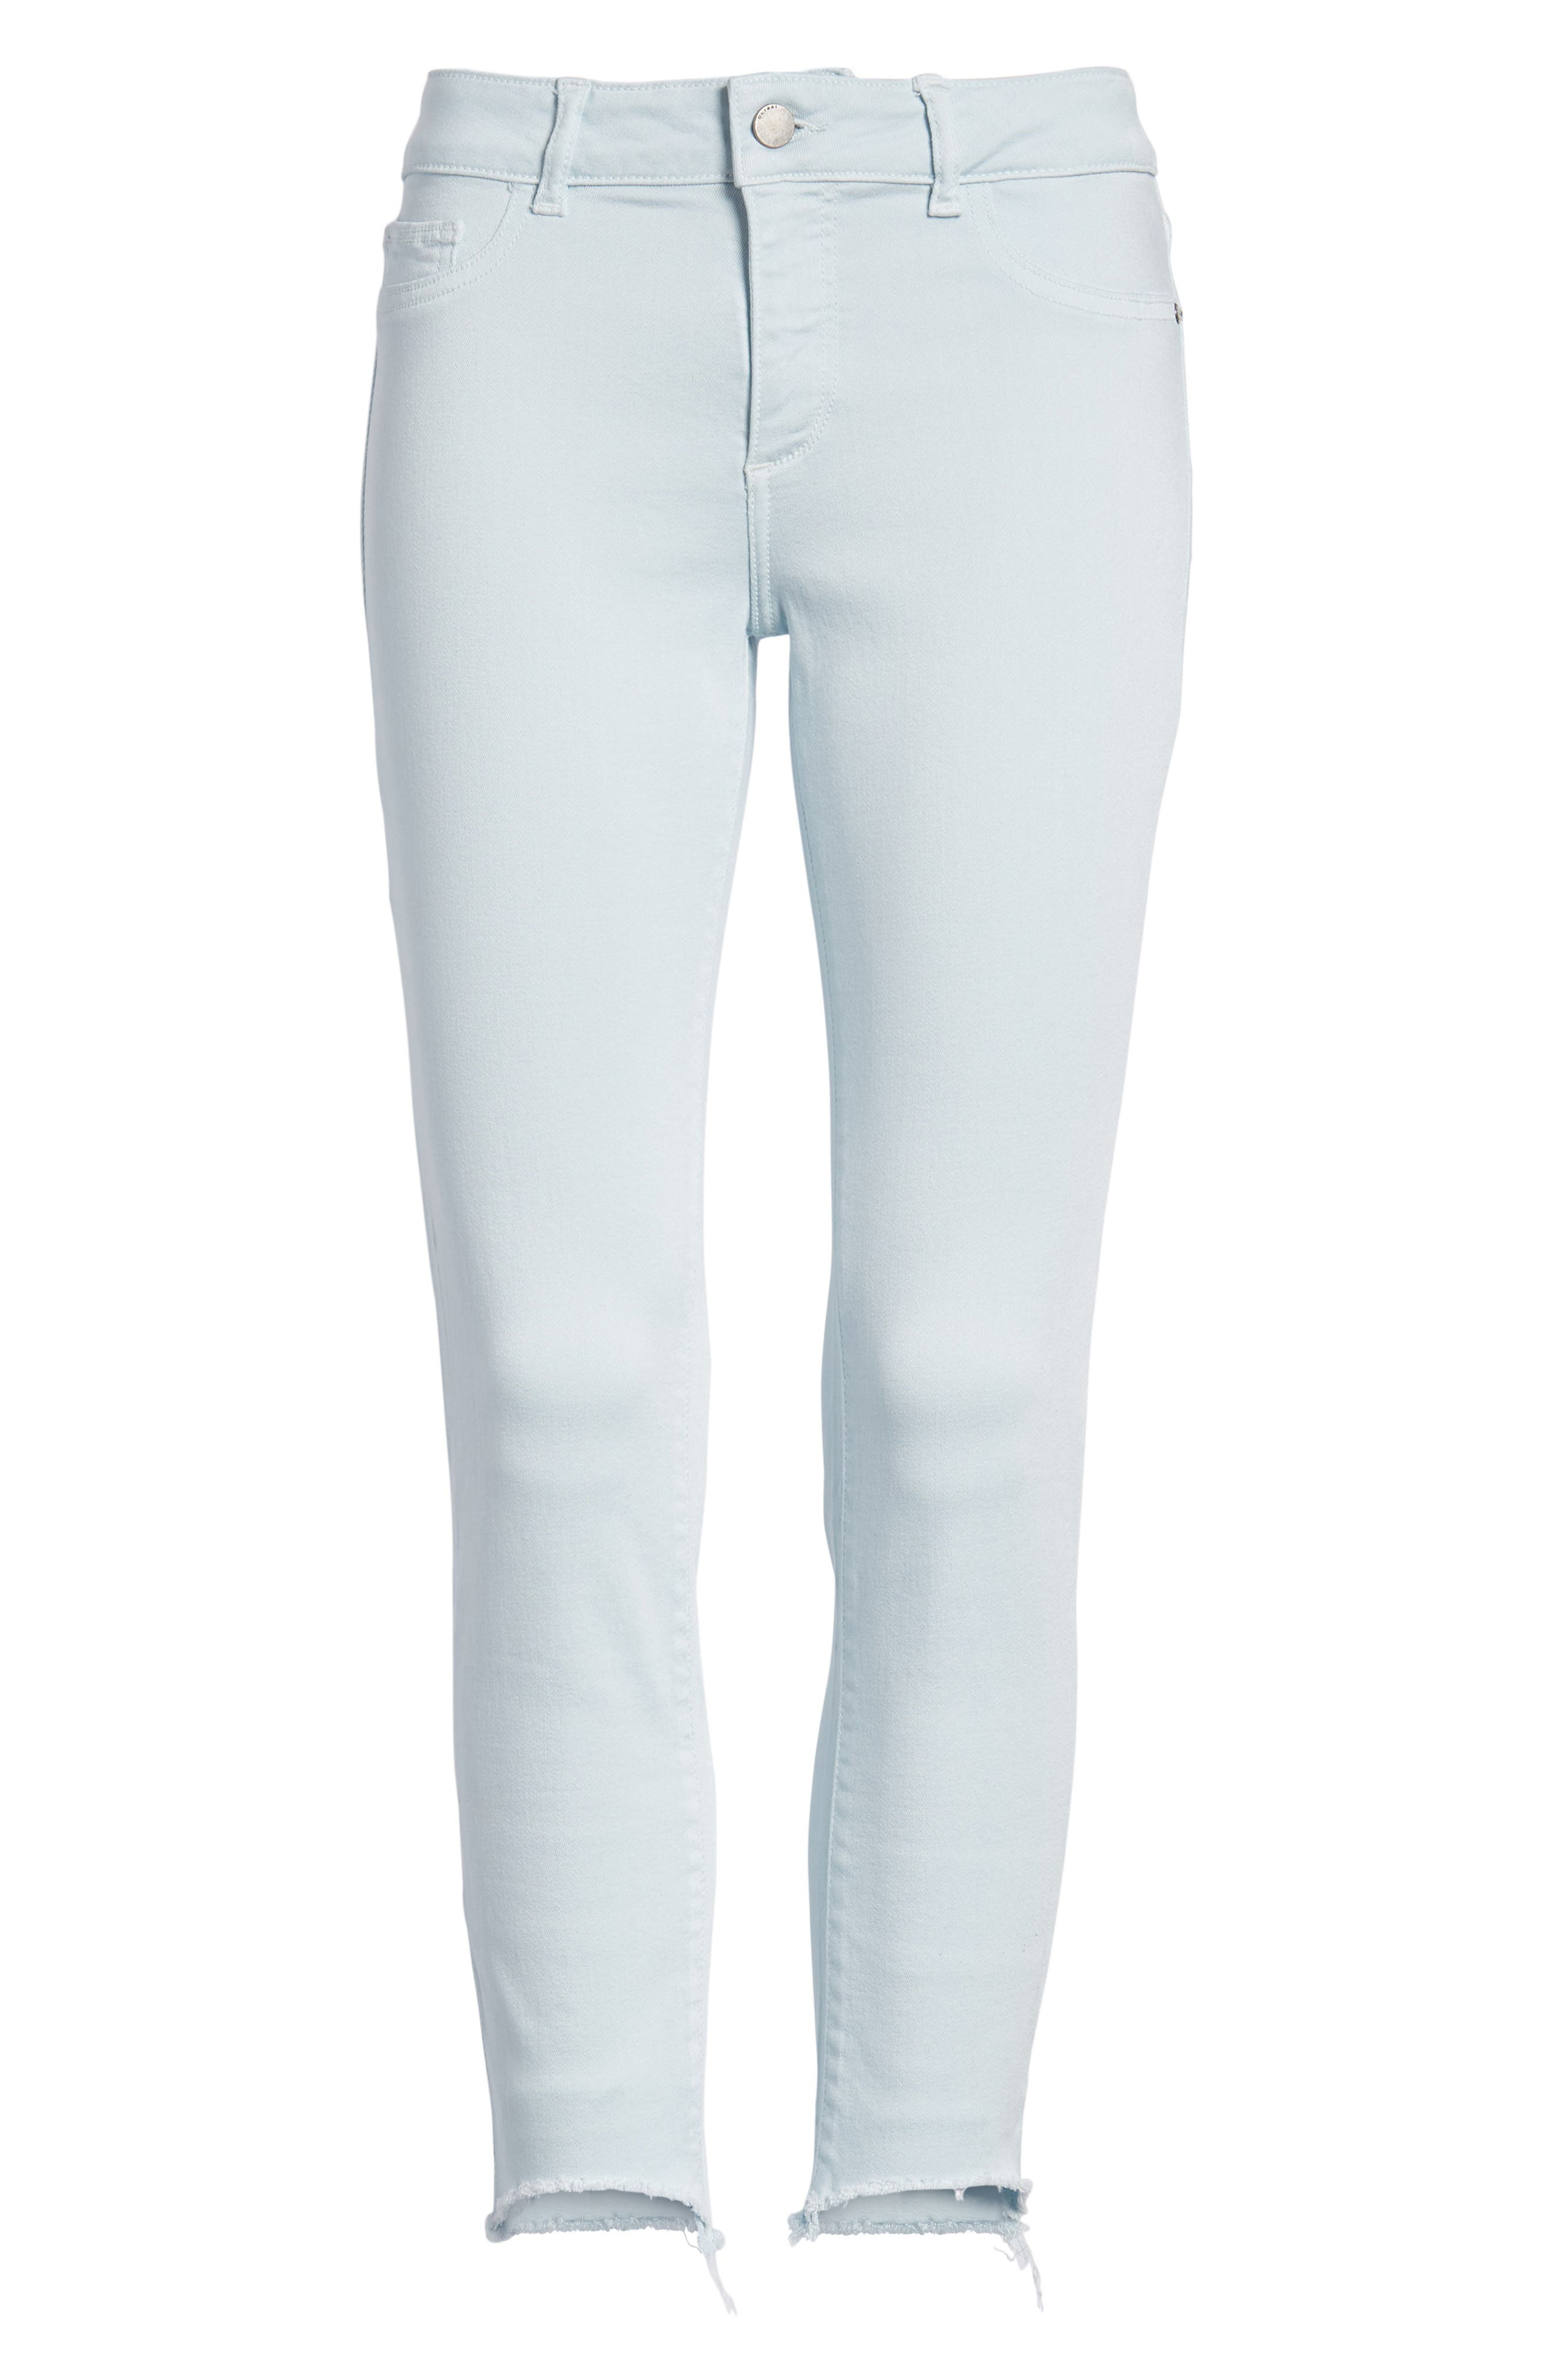 Florence Instasculpt Crop Skinny Jeans,                             Alternate thumbnail 7, color,                             430